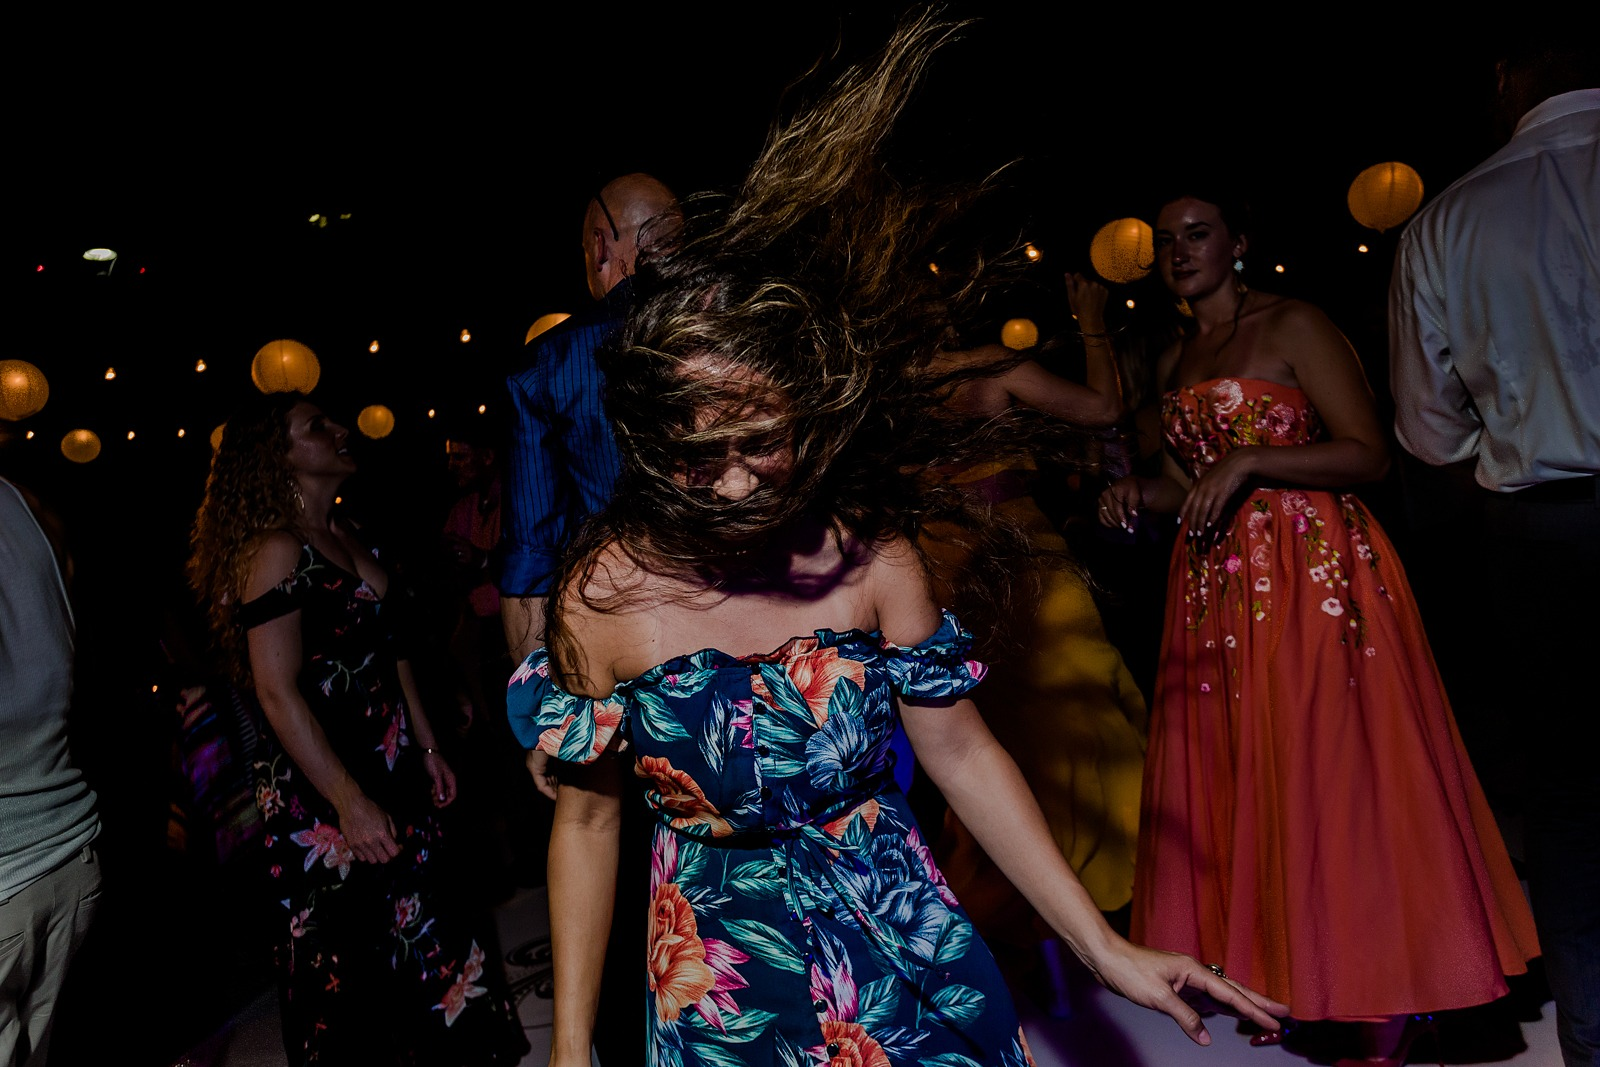 wedding-party-dance-hair-fun-crazyness-vallarta-moment-girl-dancing